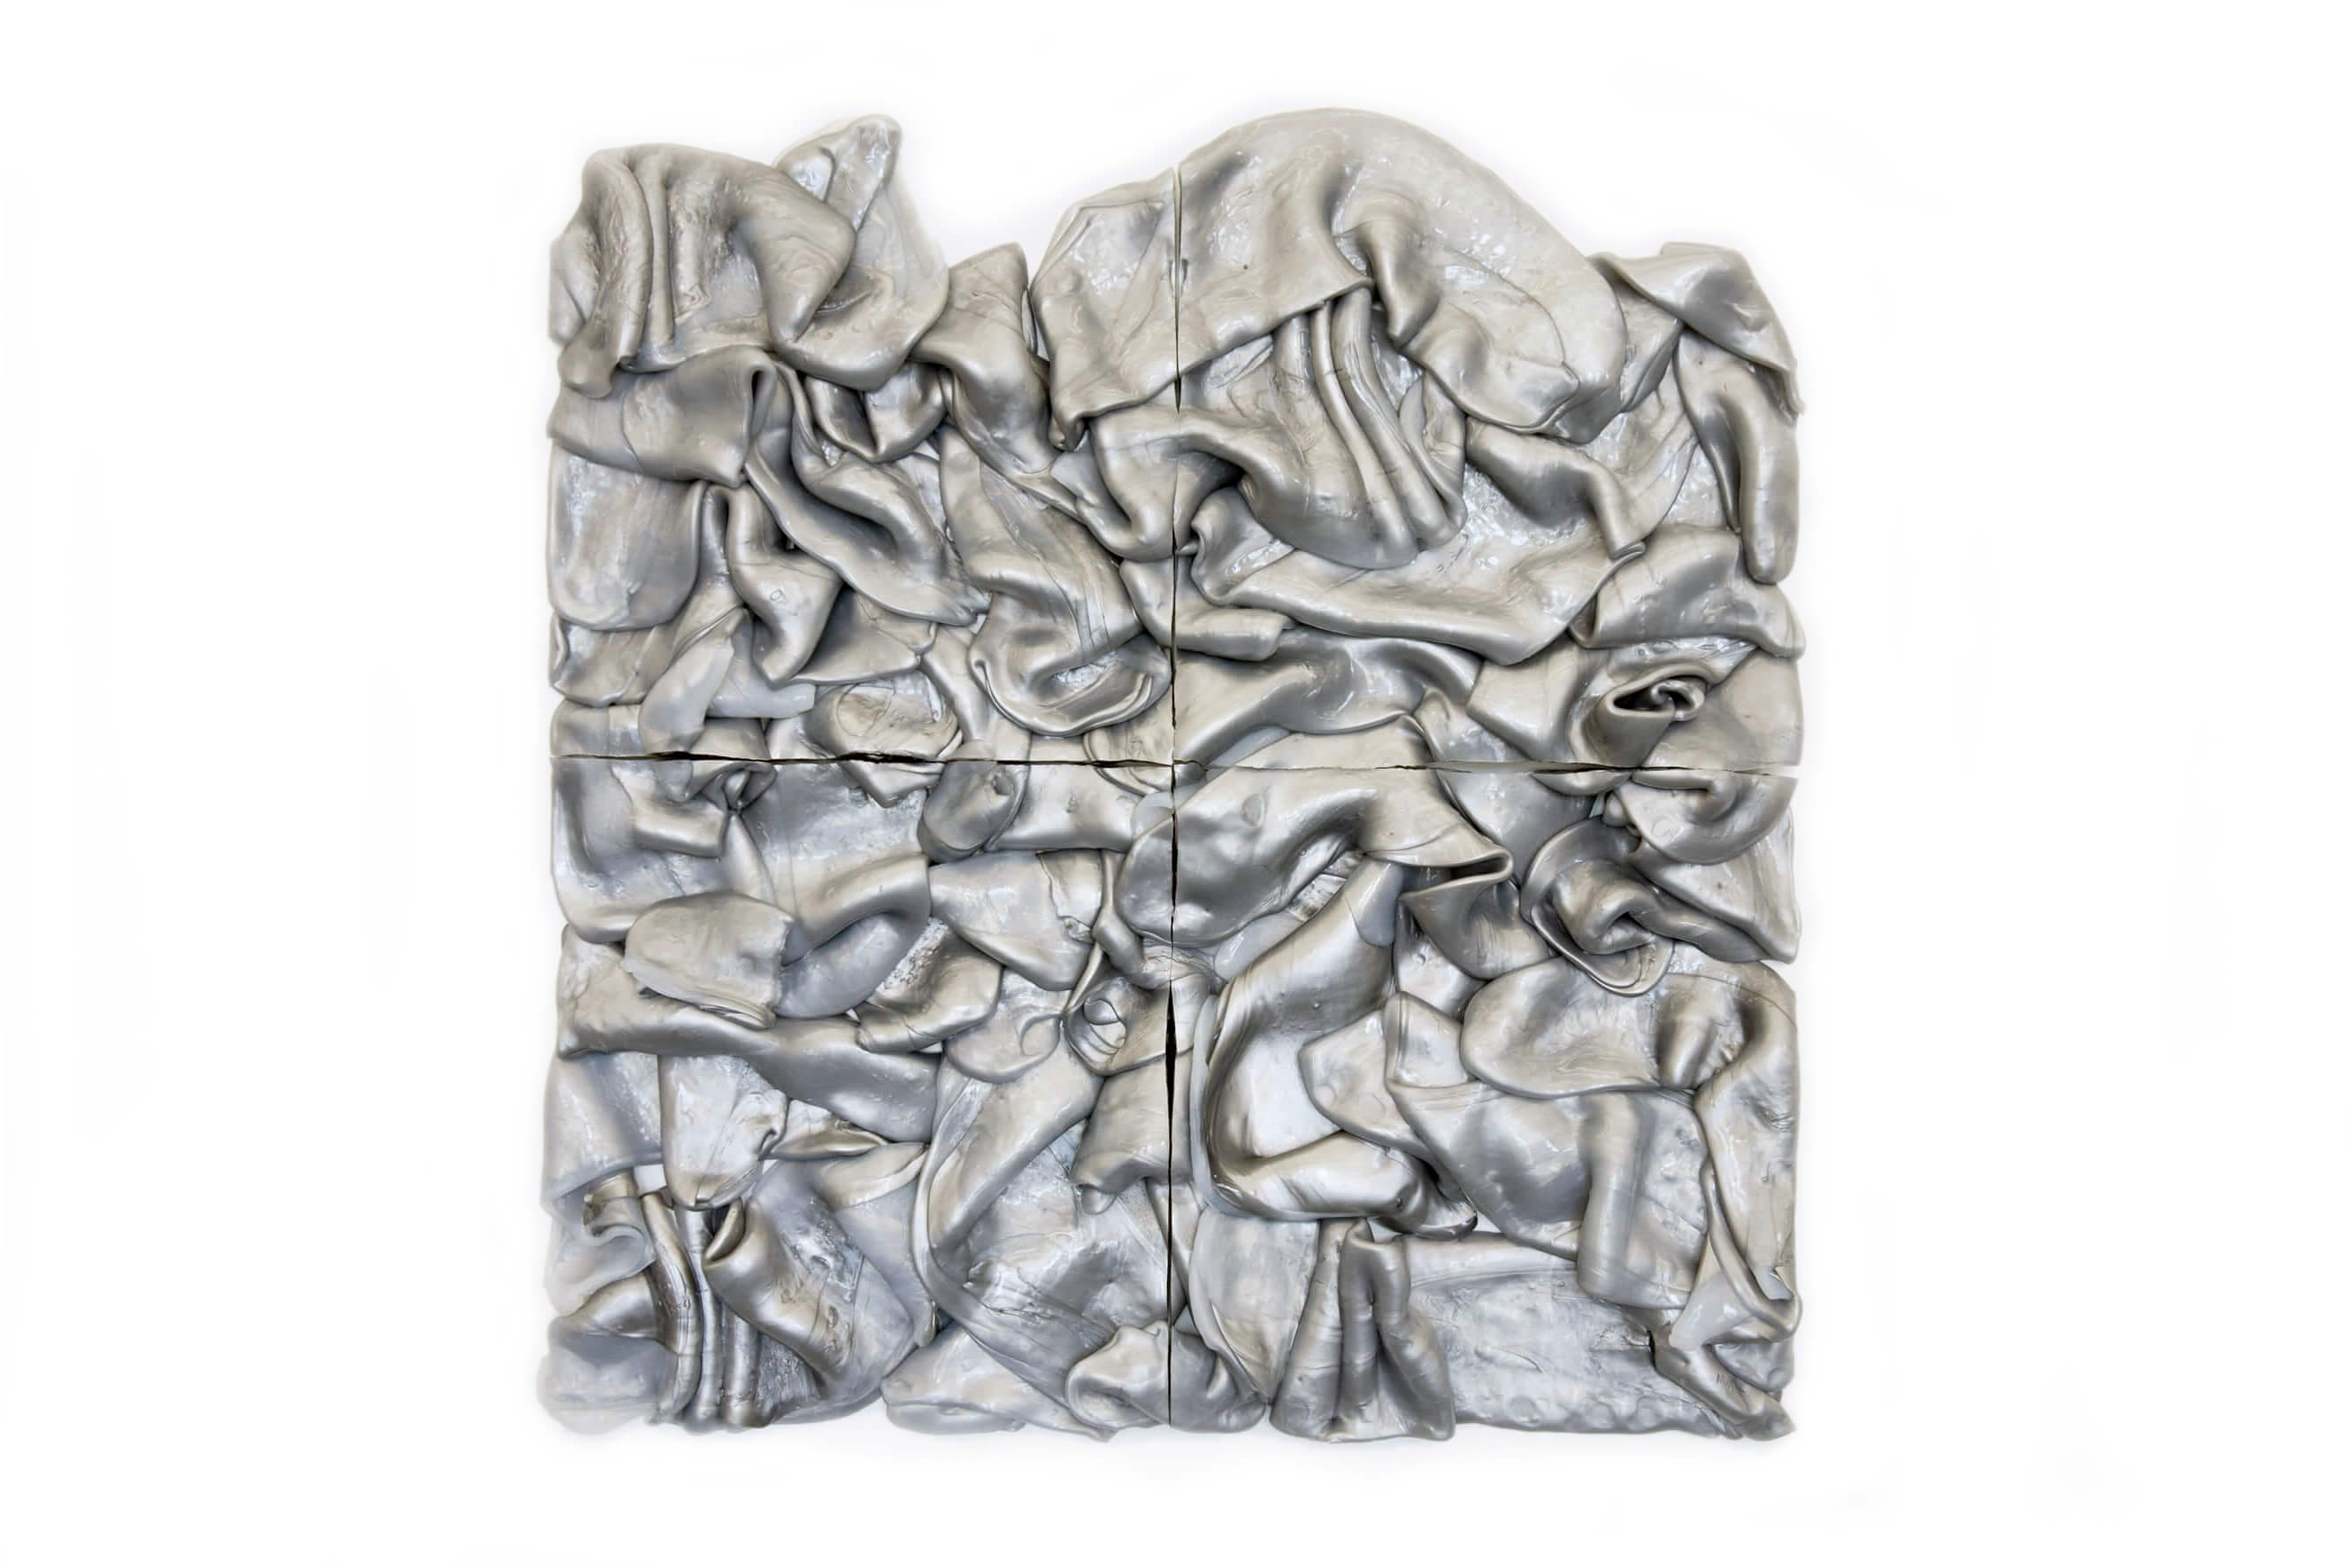 Untitled (Silver), 2011